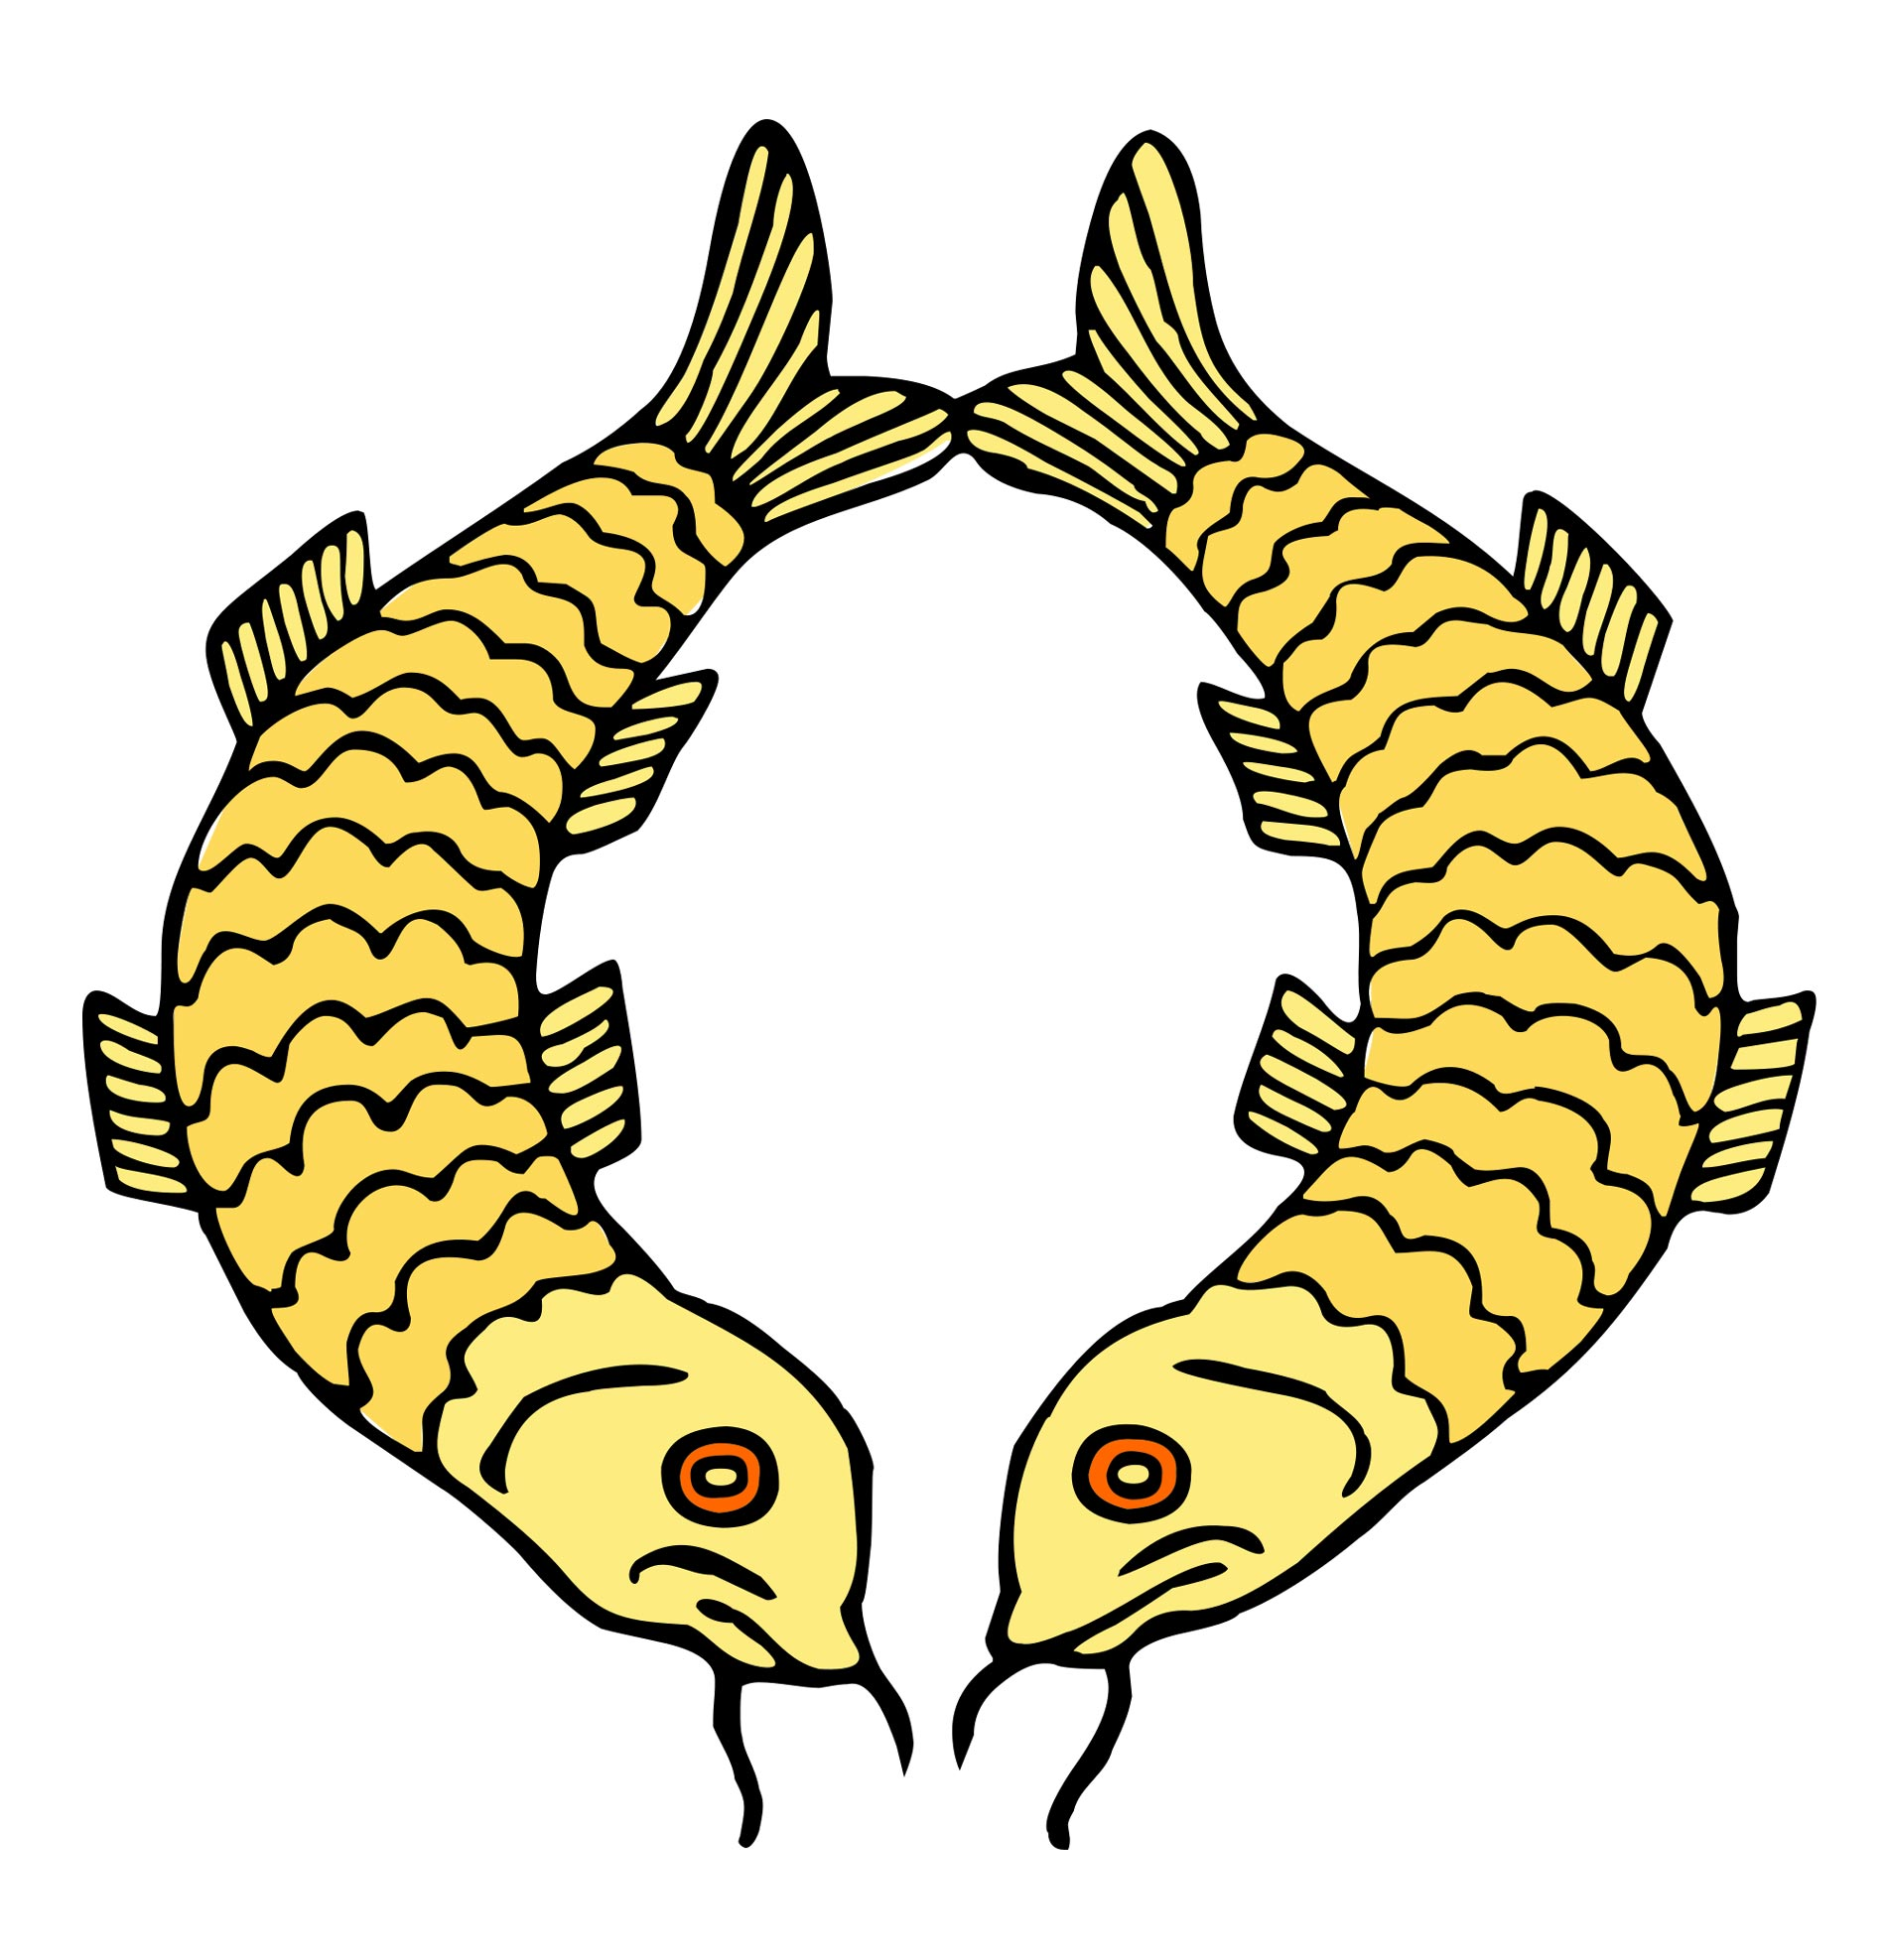 Buddhist Symbols Fish Meaning